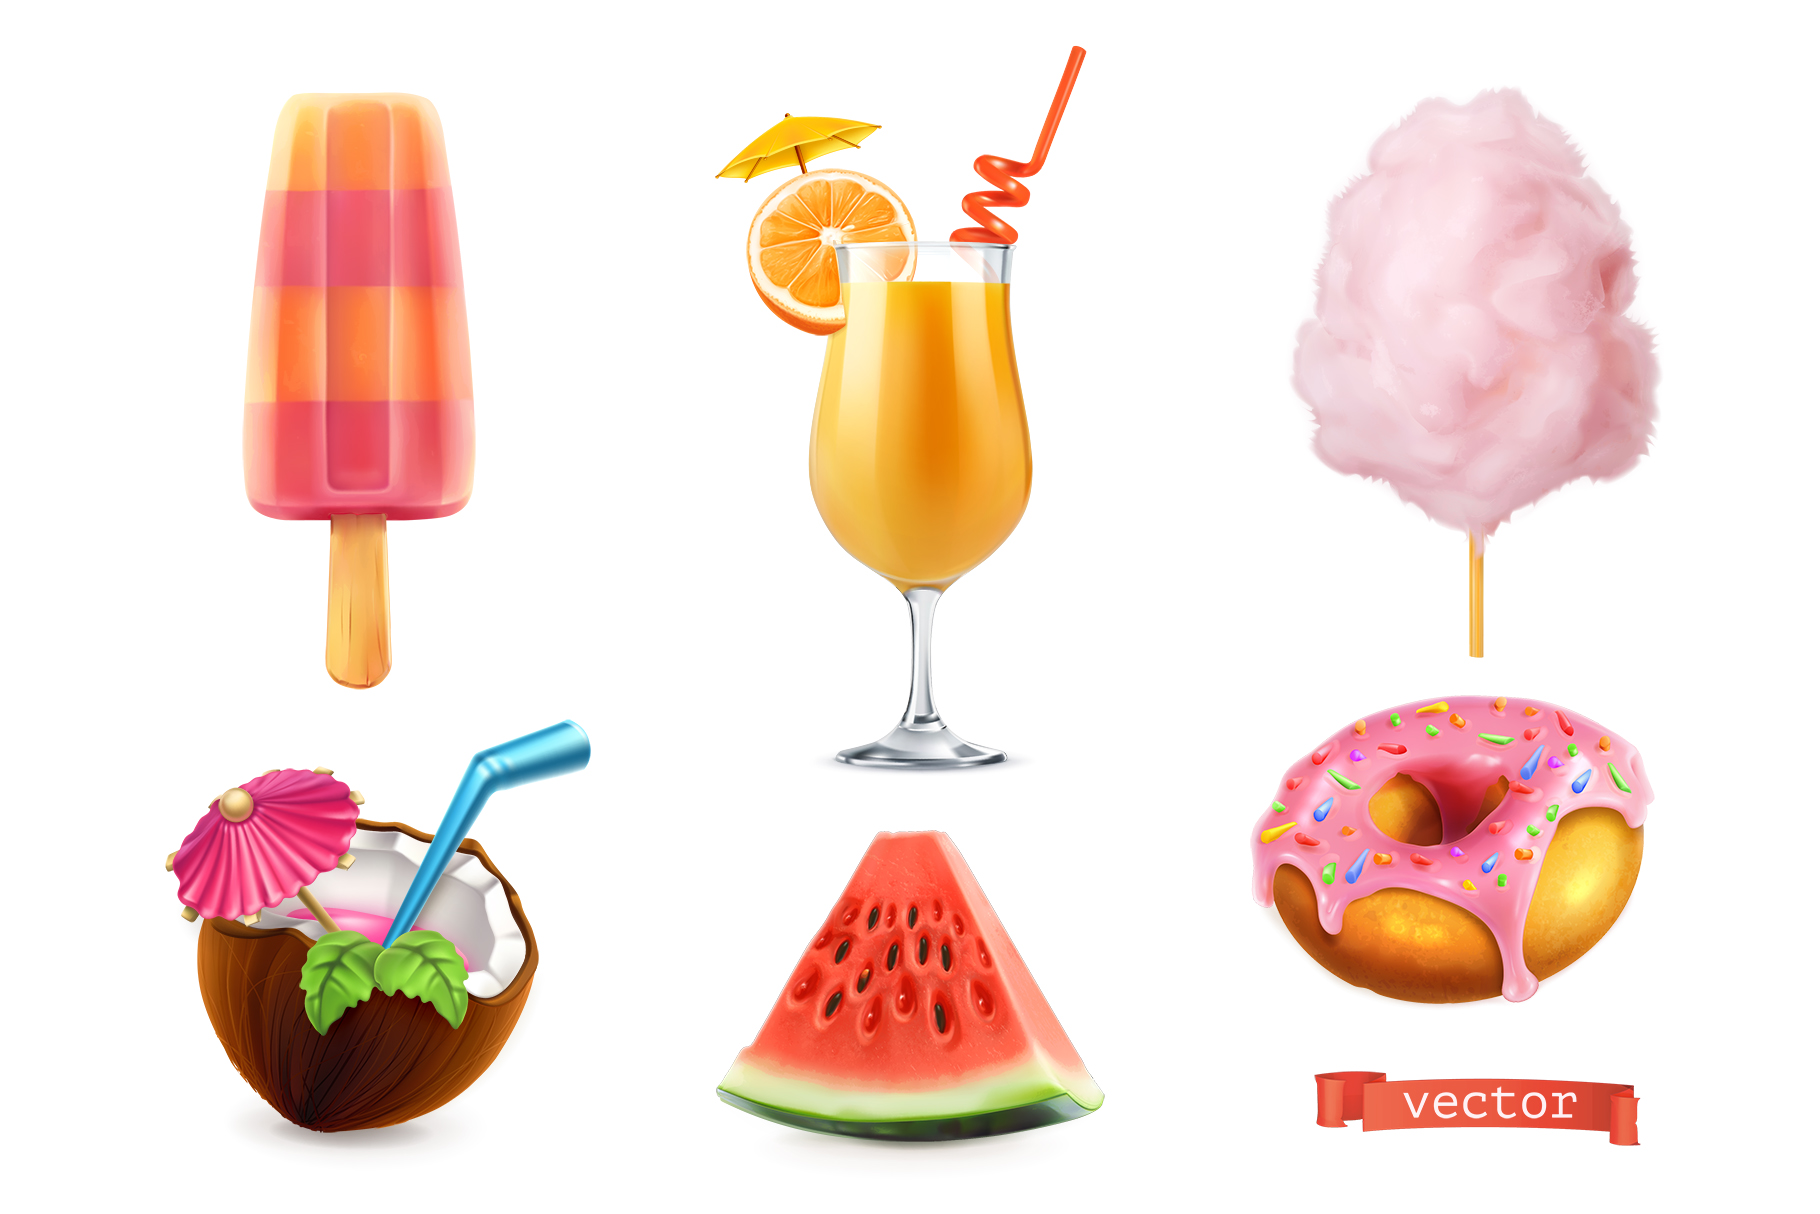 Orange juice, pink doughnut, coconut, cocktail, cotton candy example image 1